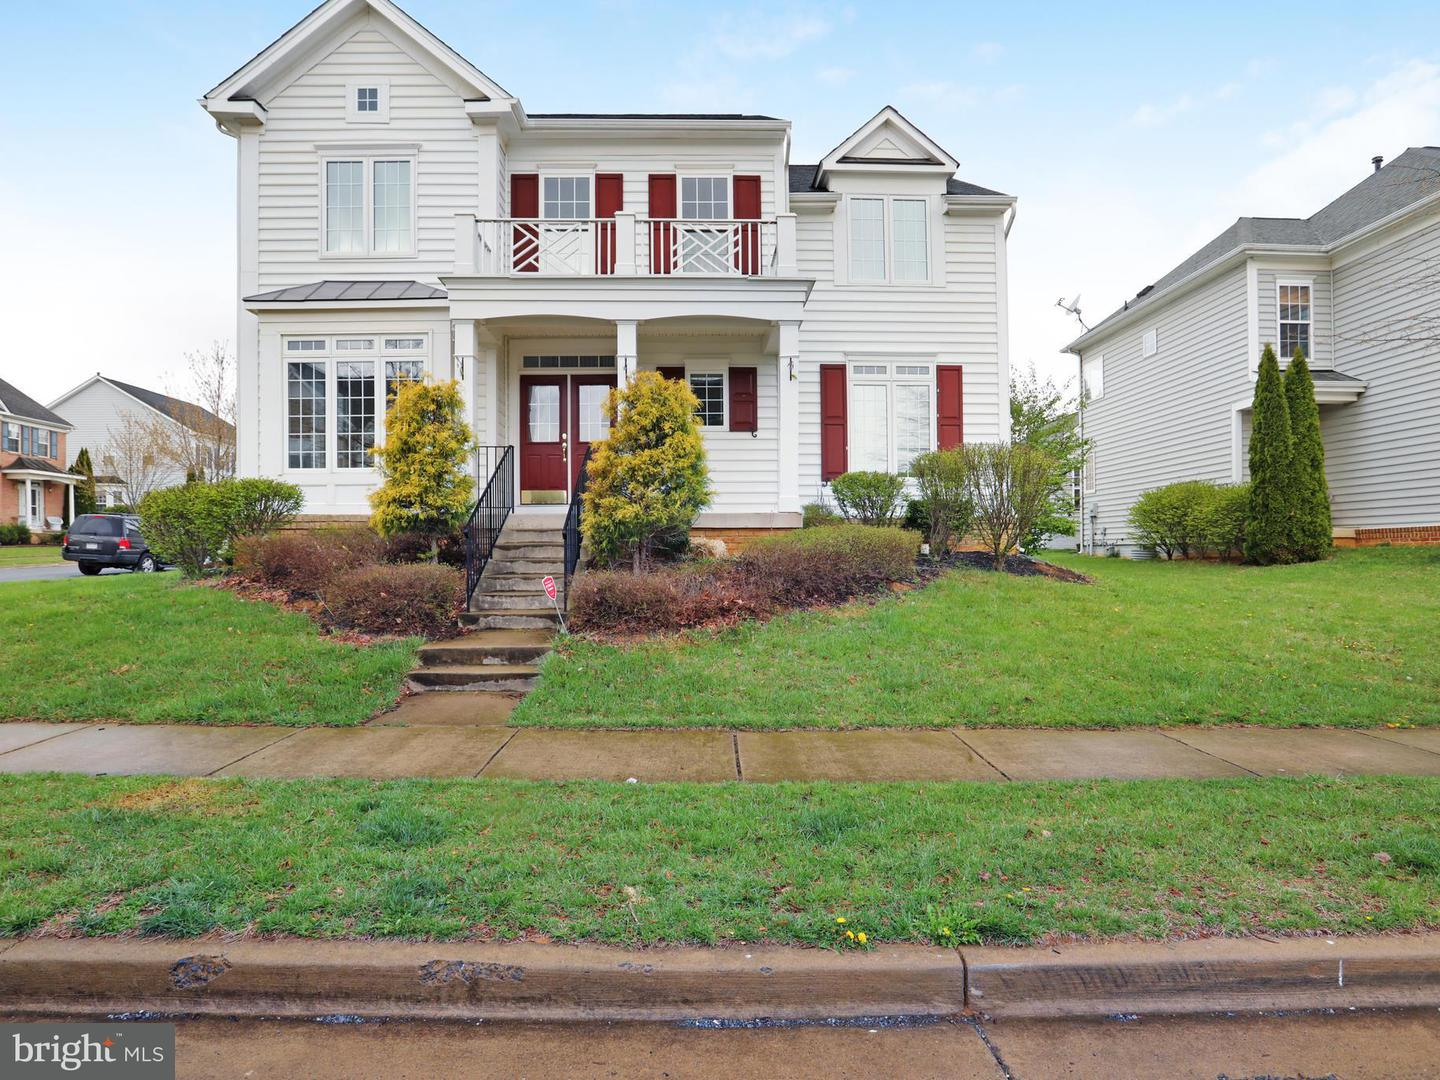 Other Residential for Rent at 254 Davis St Charles Town, West Virginia 25414 United States